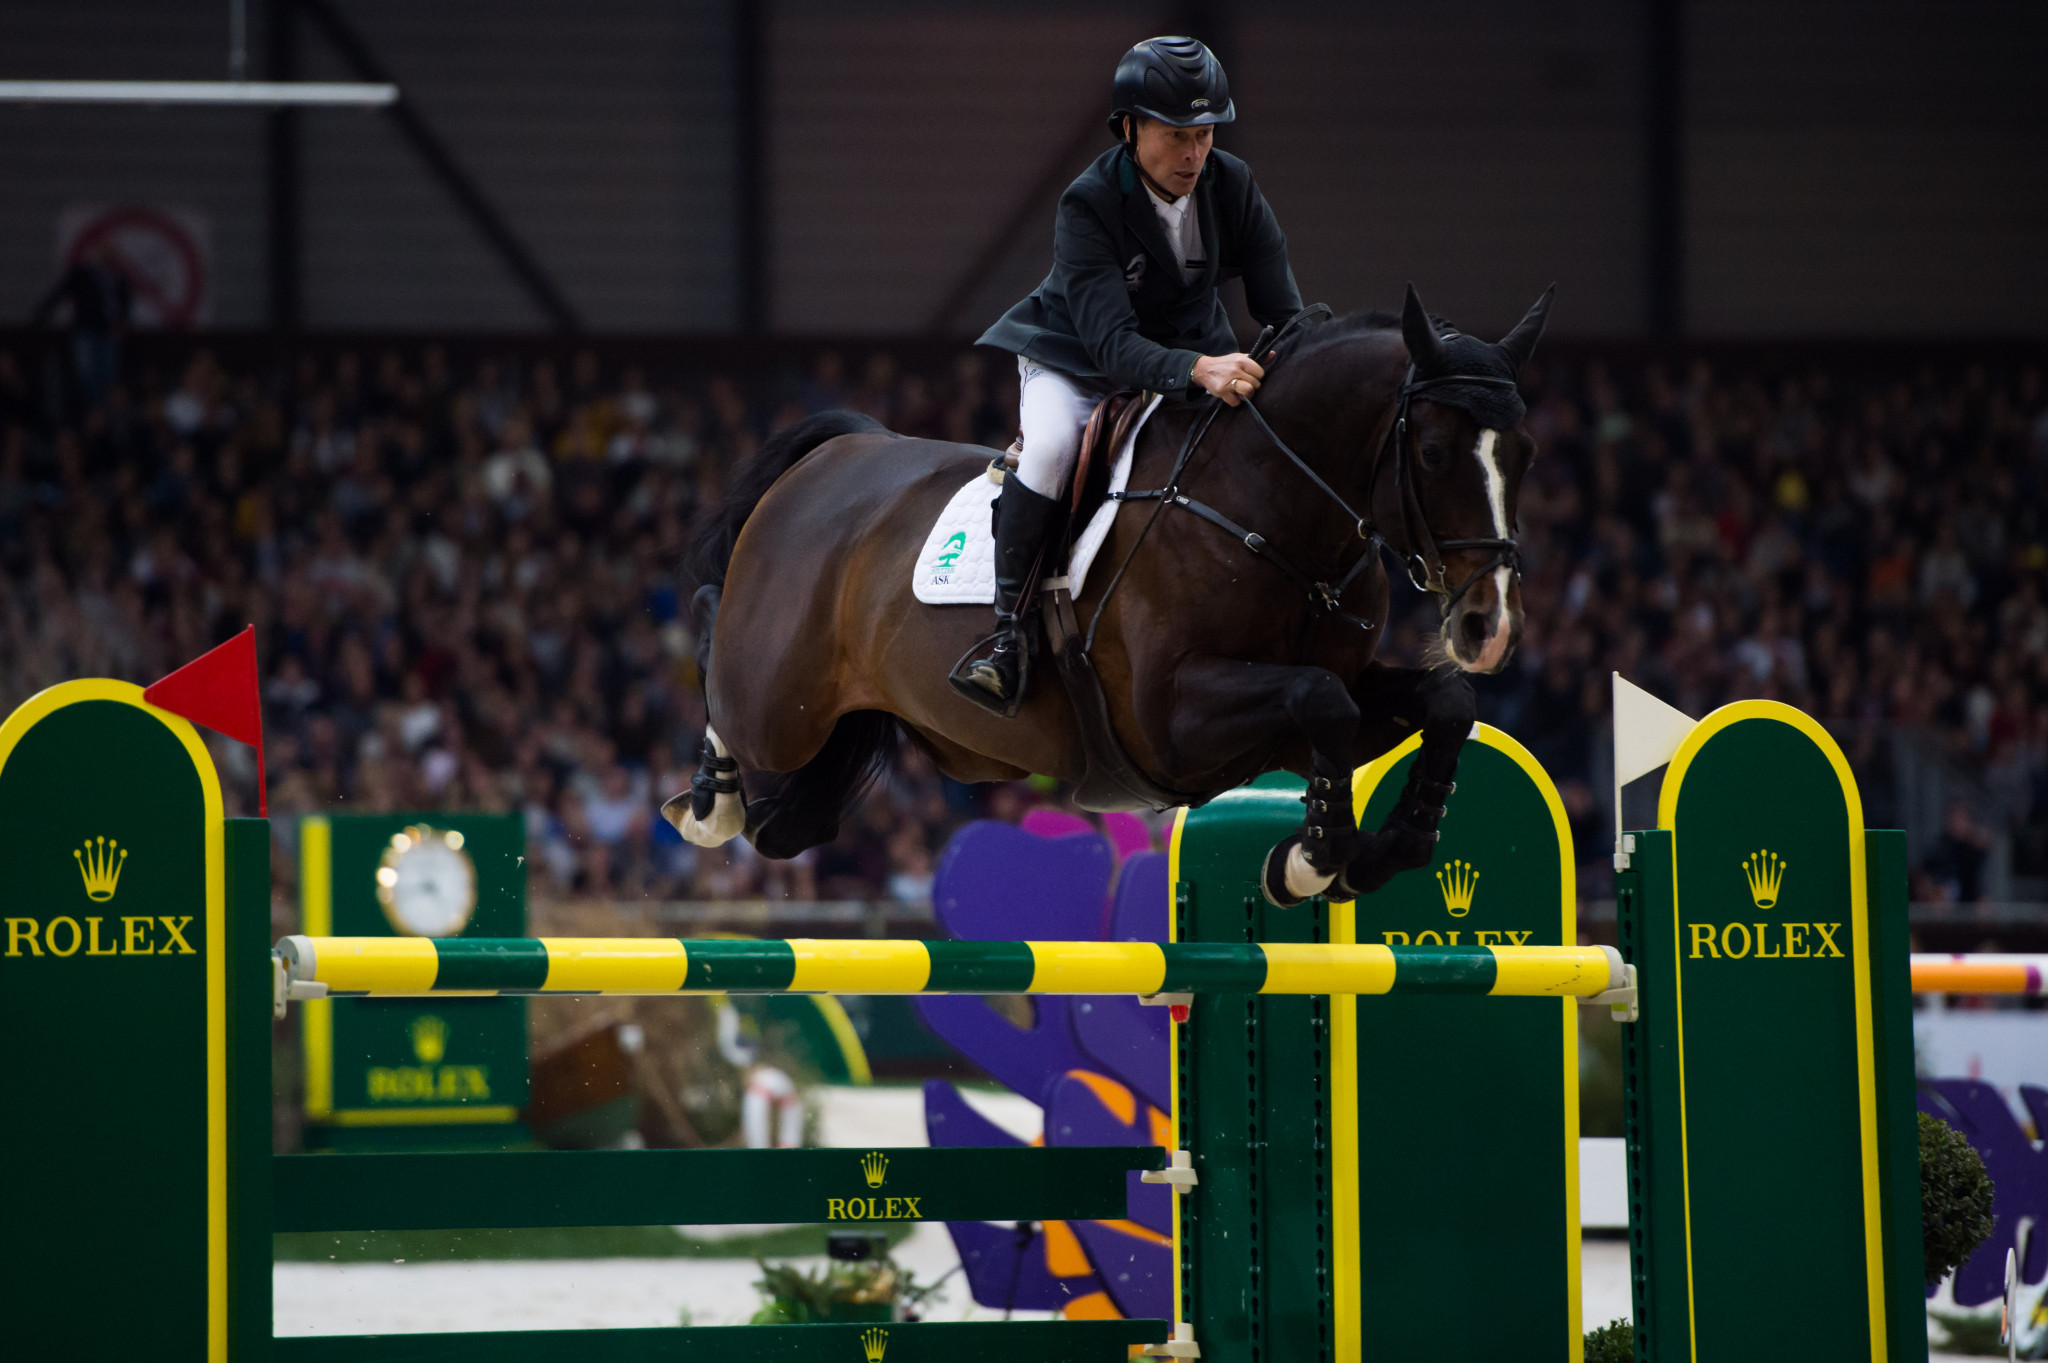 Defending champion Rolf-Goran Bengtsson will ride a new horse after the retirement of Casall ©Getty Images